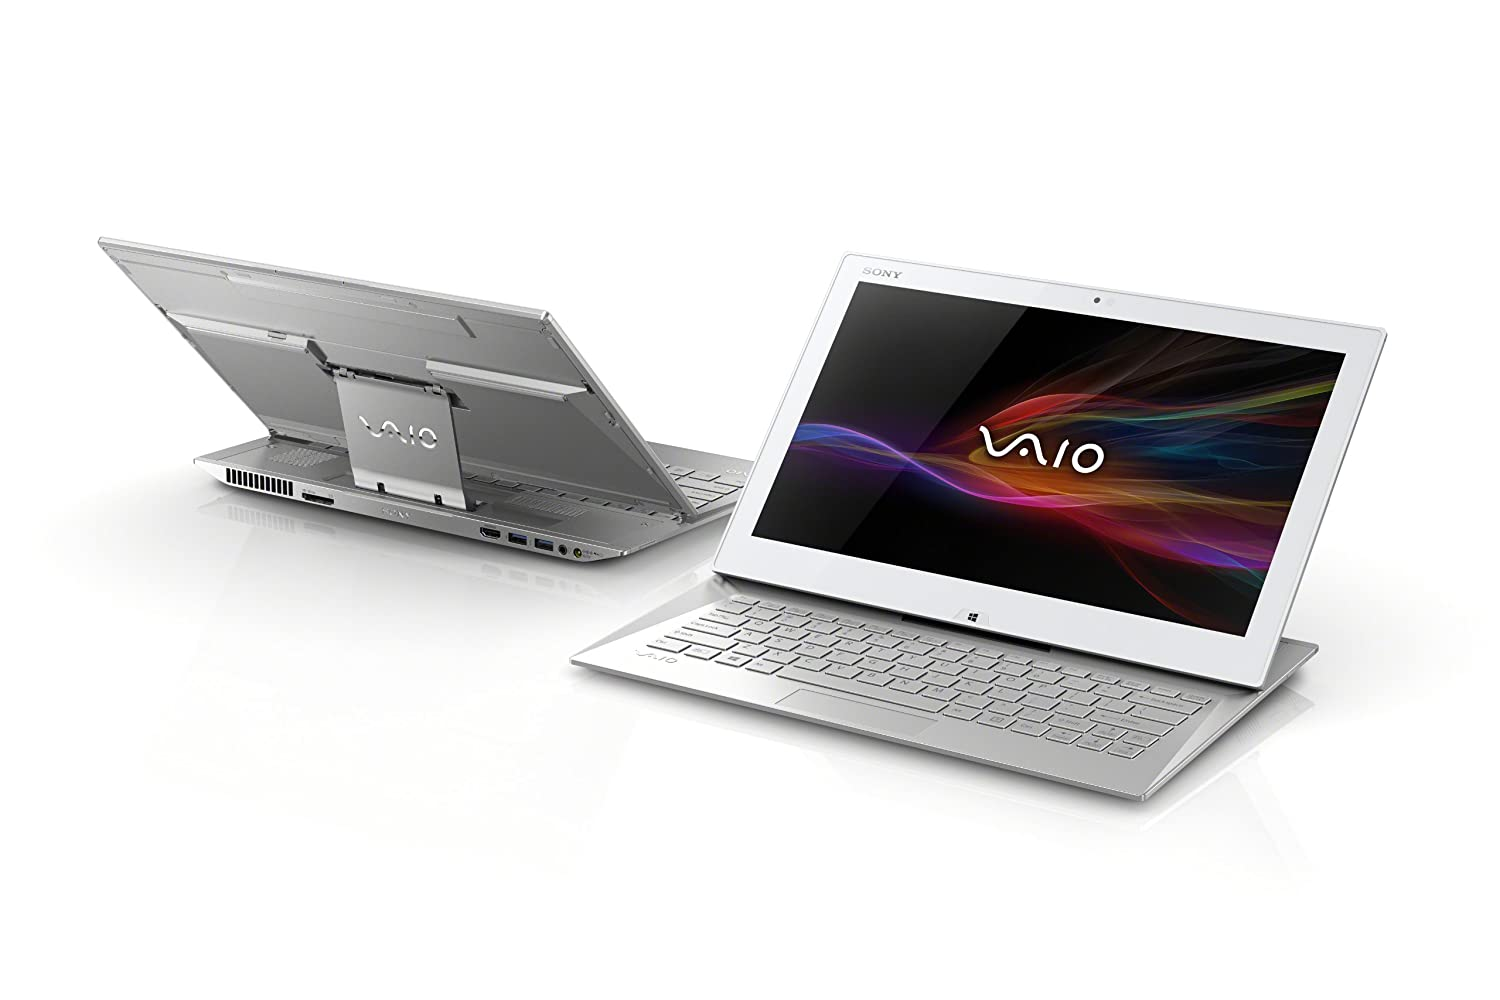 sony vaio laptop. sony vaio duo 13 touchscreen laptop convertible ultrabooktm svd1321m2ew (silver): amazon.co.uk: computers \u0026 accessories